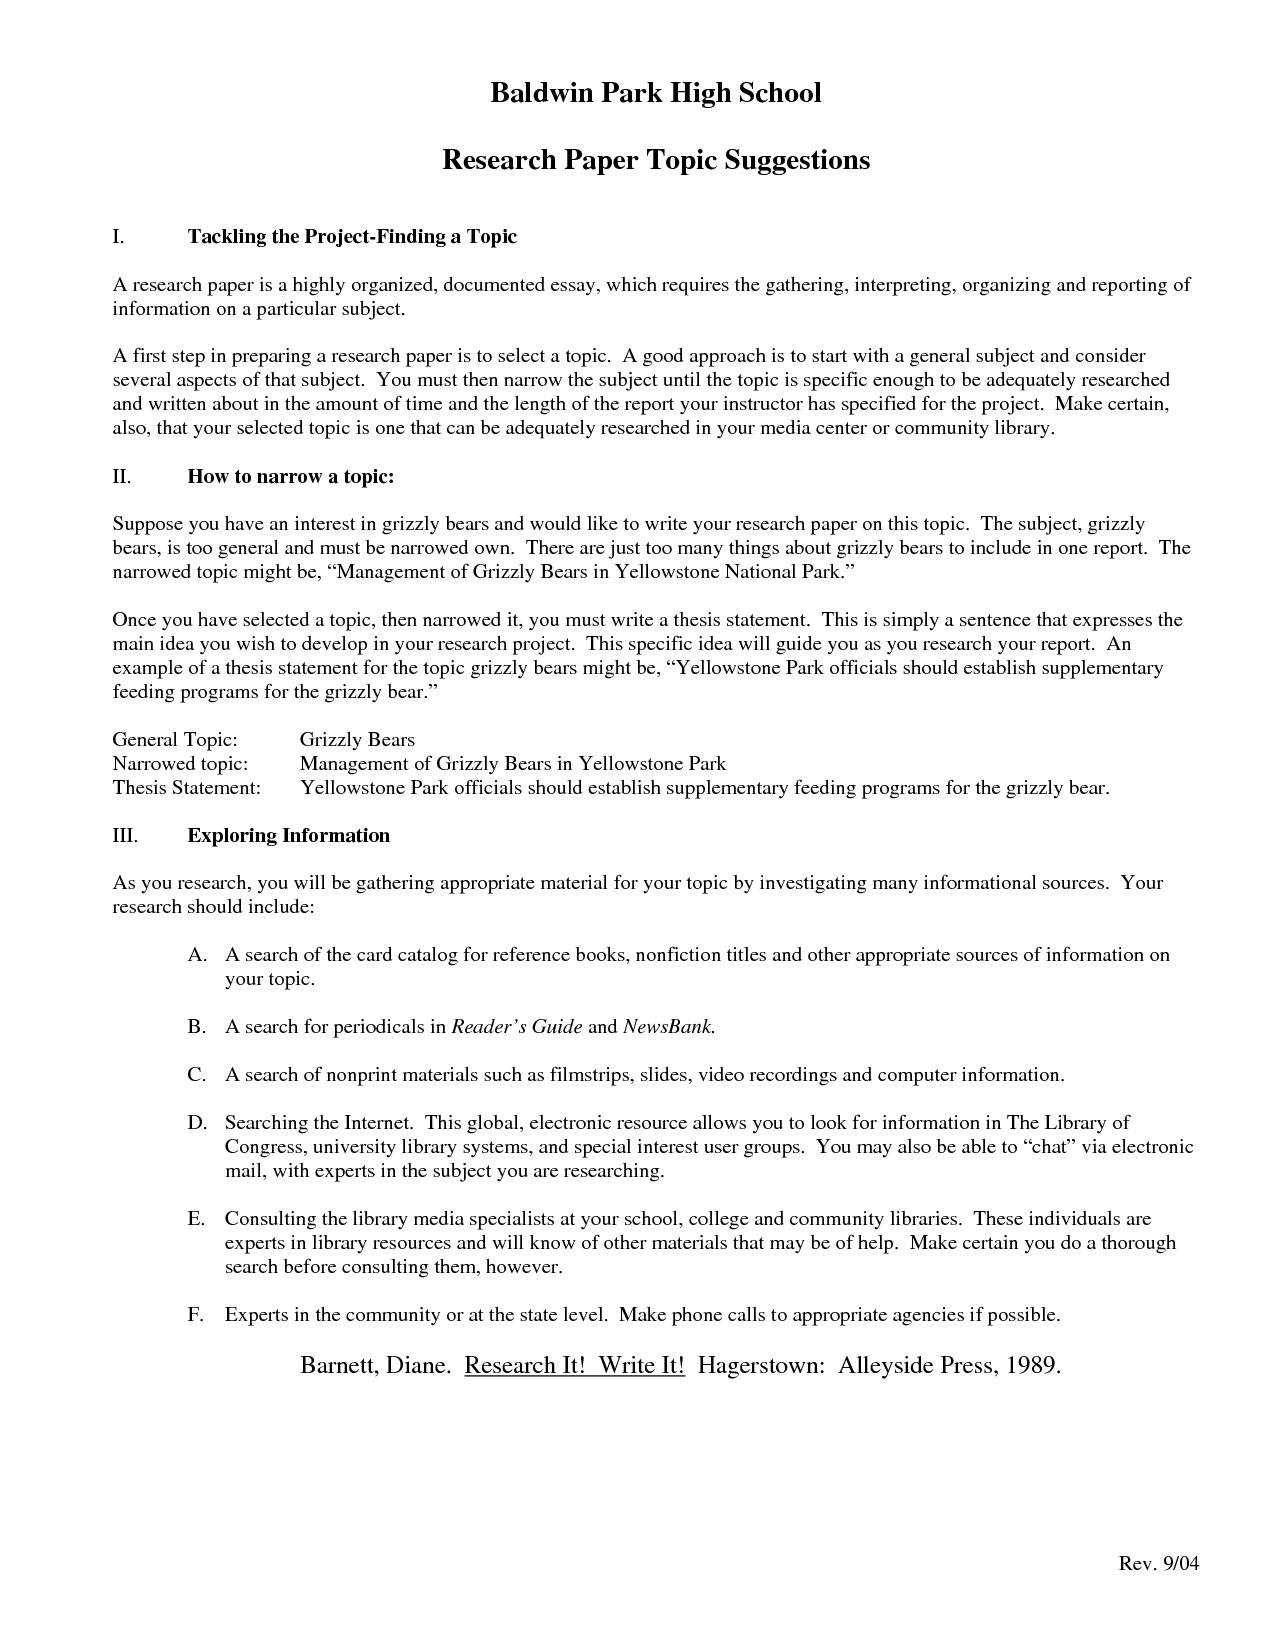 high school outline research paper Sample outlines for essays and research papers sample outlines for narrative, expository, and other essay types these clear, simple, and useful outlines provide easy-to-follow instructions on how to organize and outline your ideas before writing an essay.